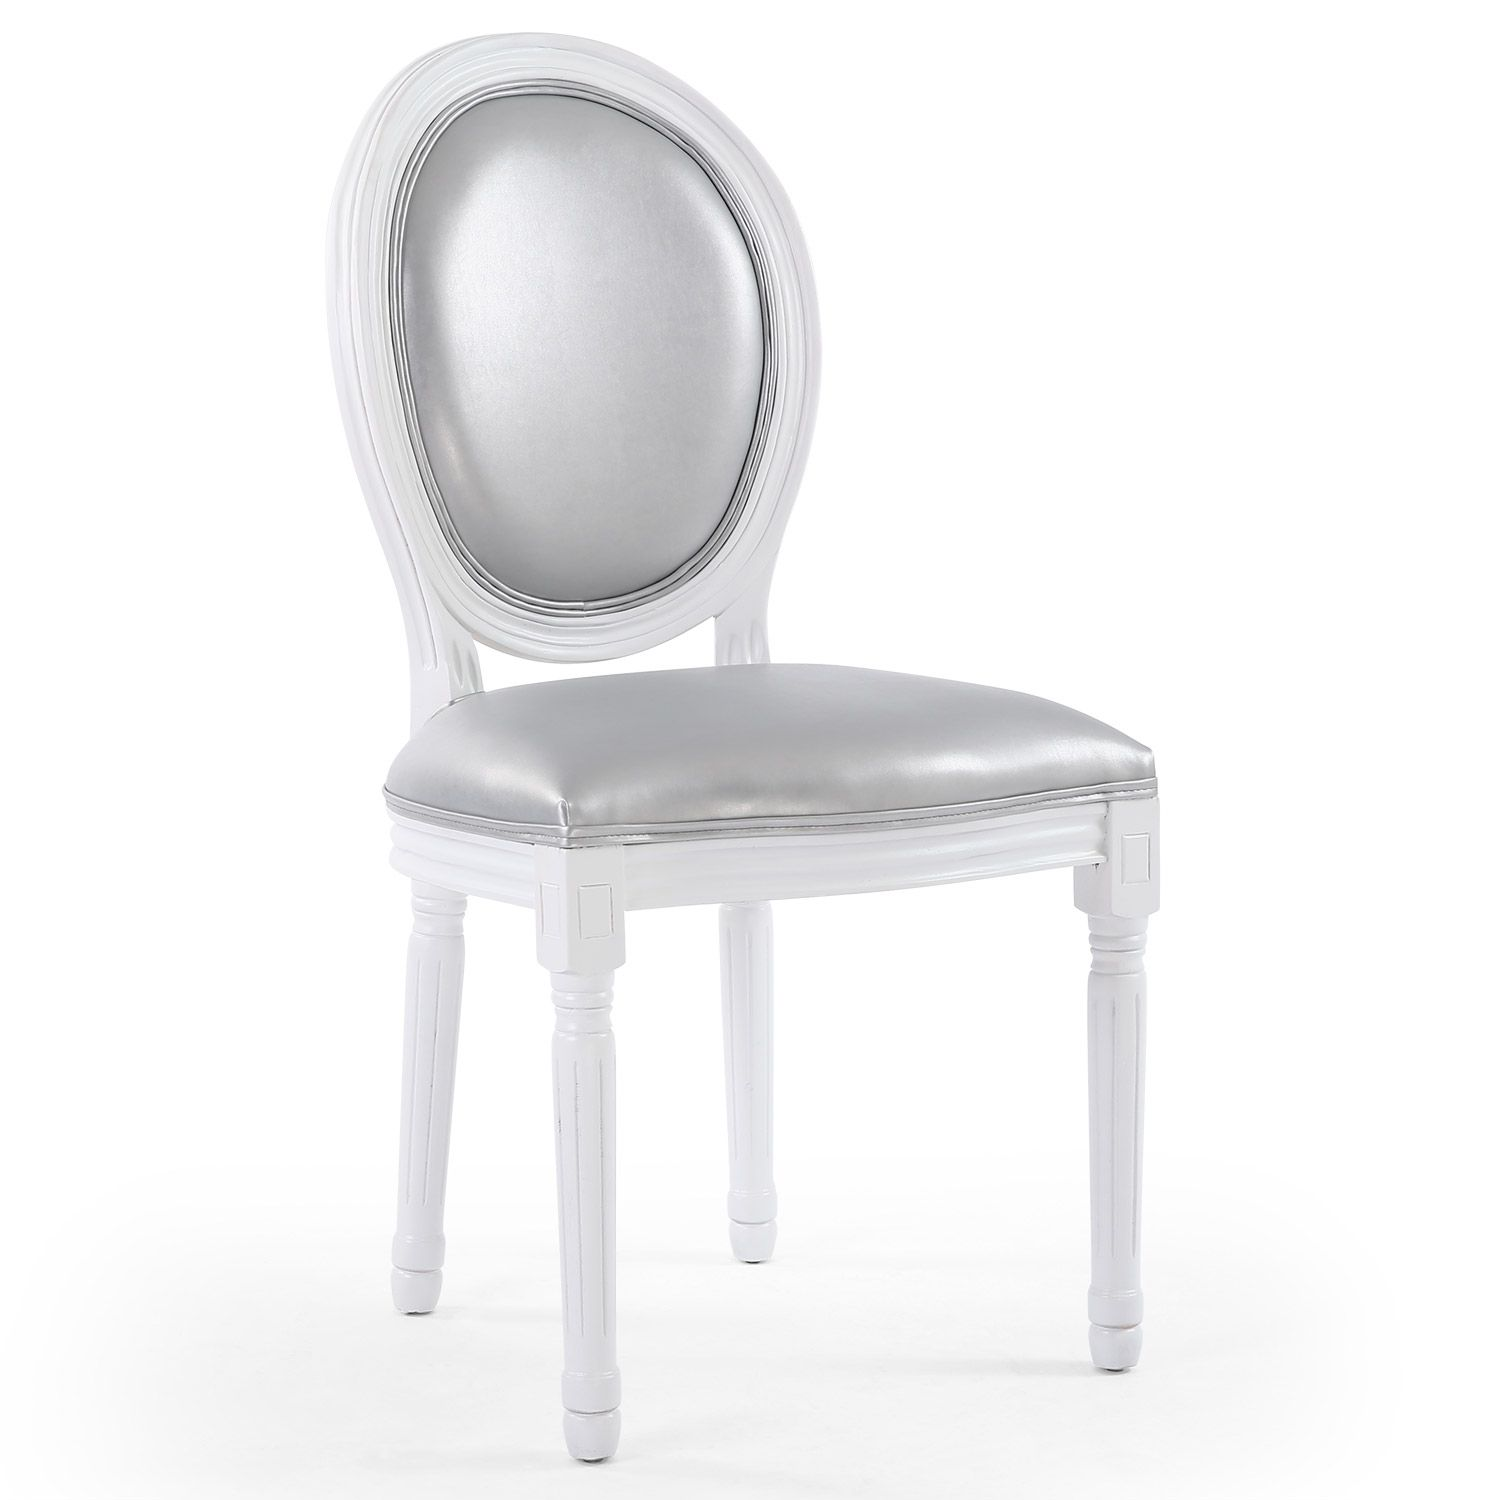 Chaise m daillon bois blanc et simili gris louis xvi lot for Chaise medaillon cuir